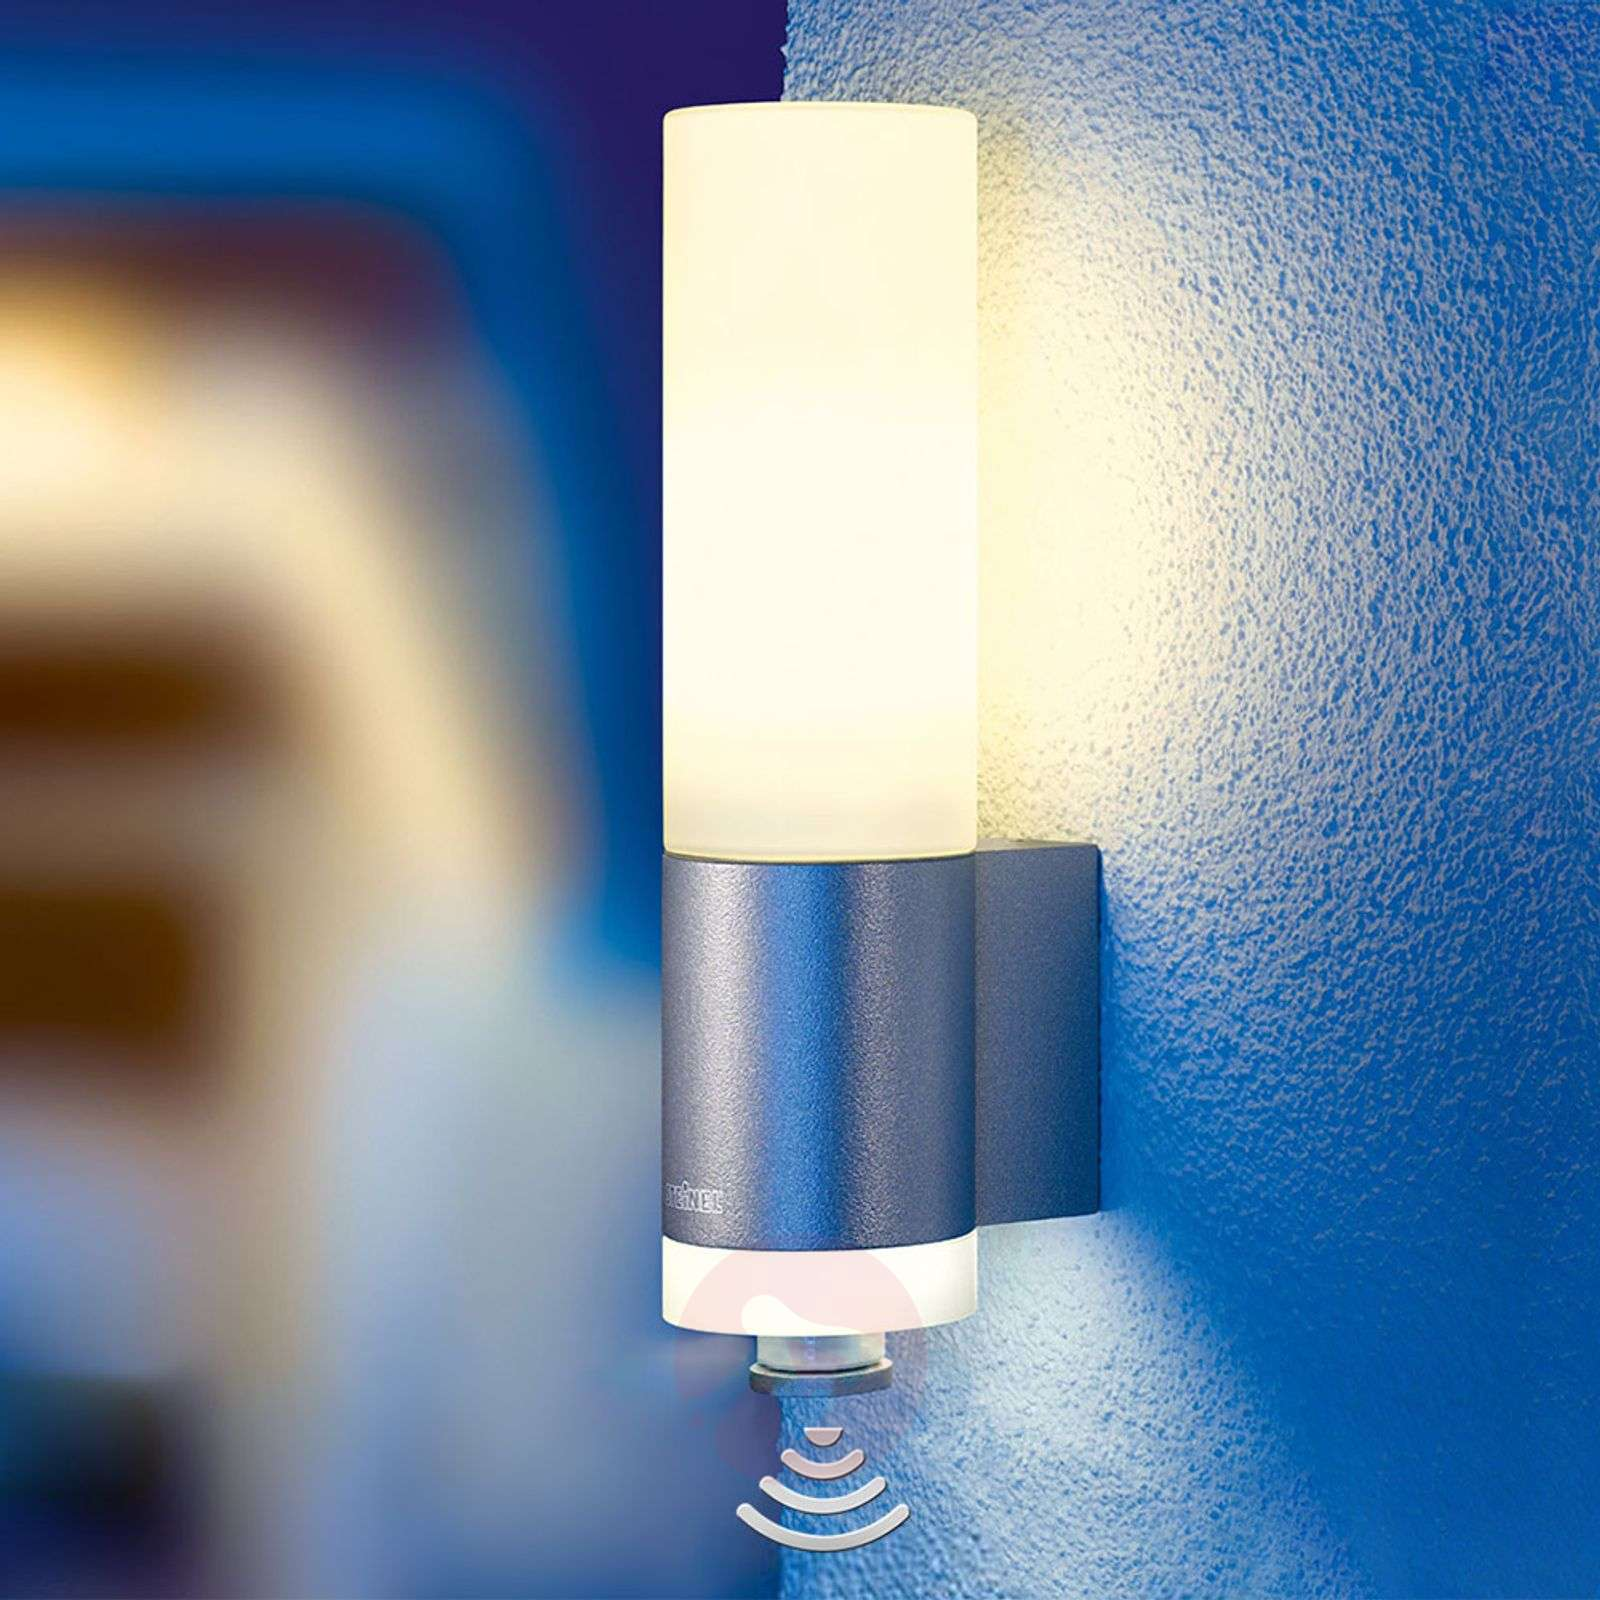 L 265 Sensor wall light for the outdoors-8505662-01